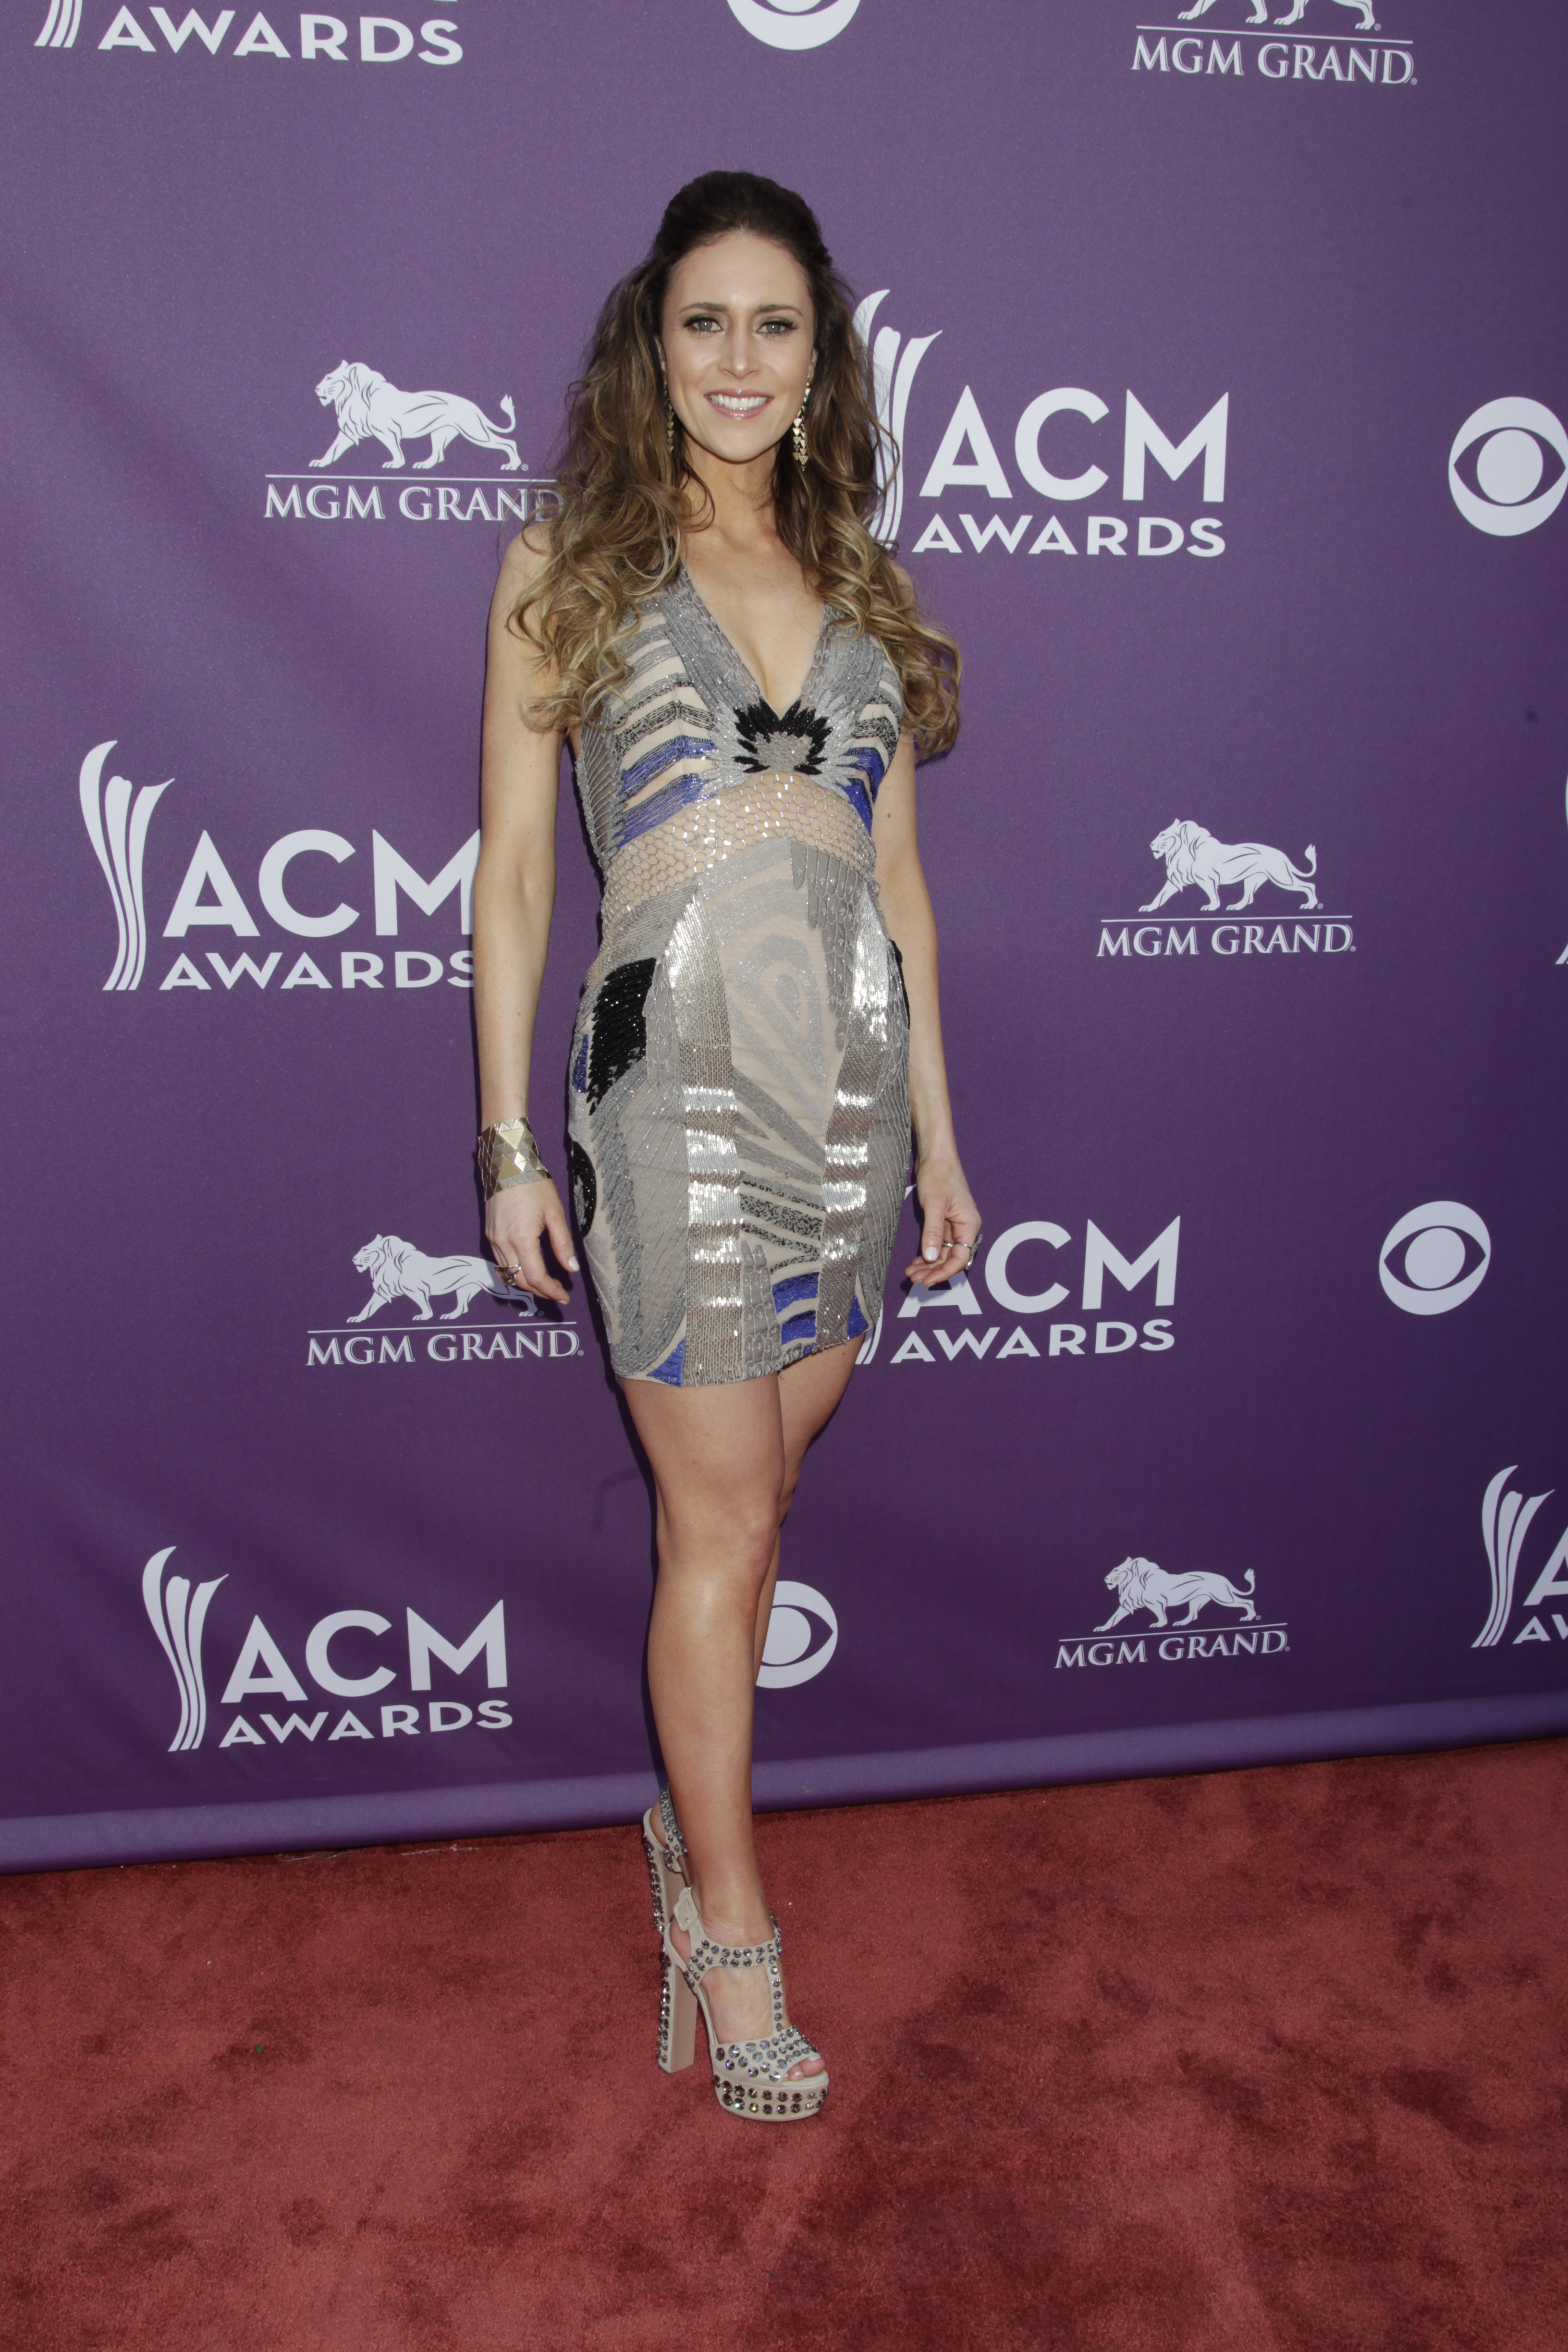 Kelleigh Bannen on the Red Carpet - 48th ACM Awards